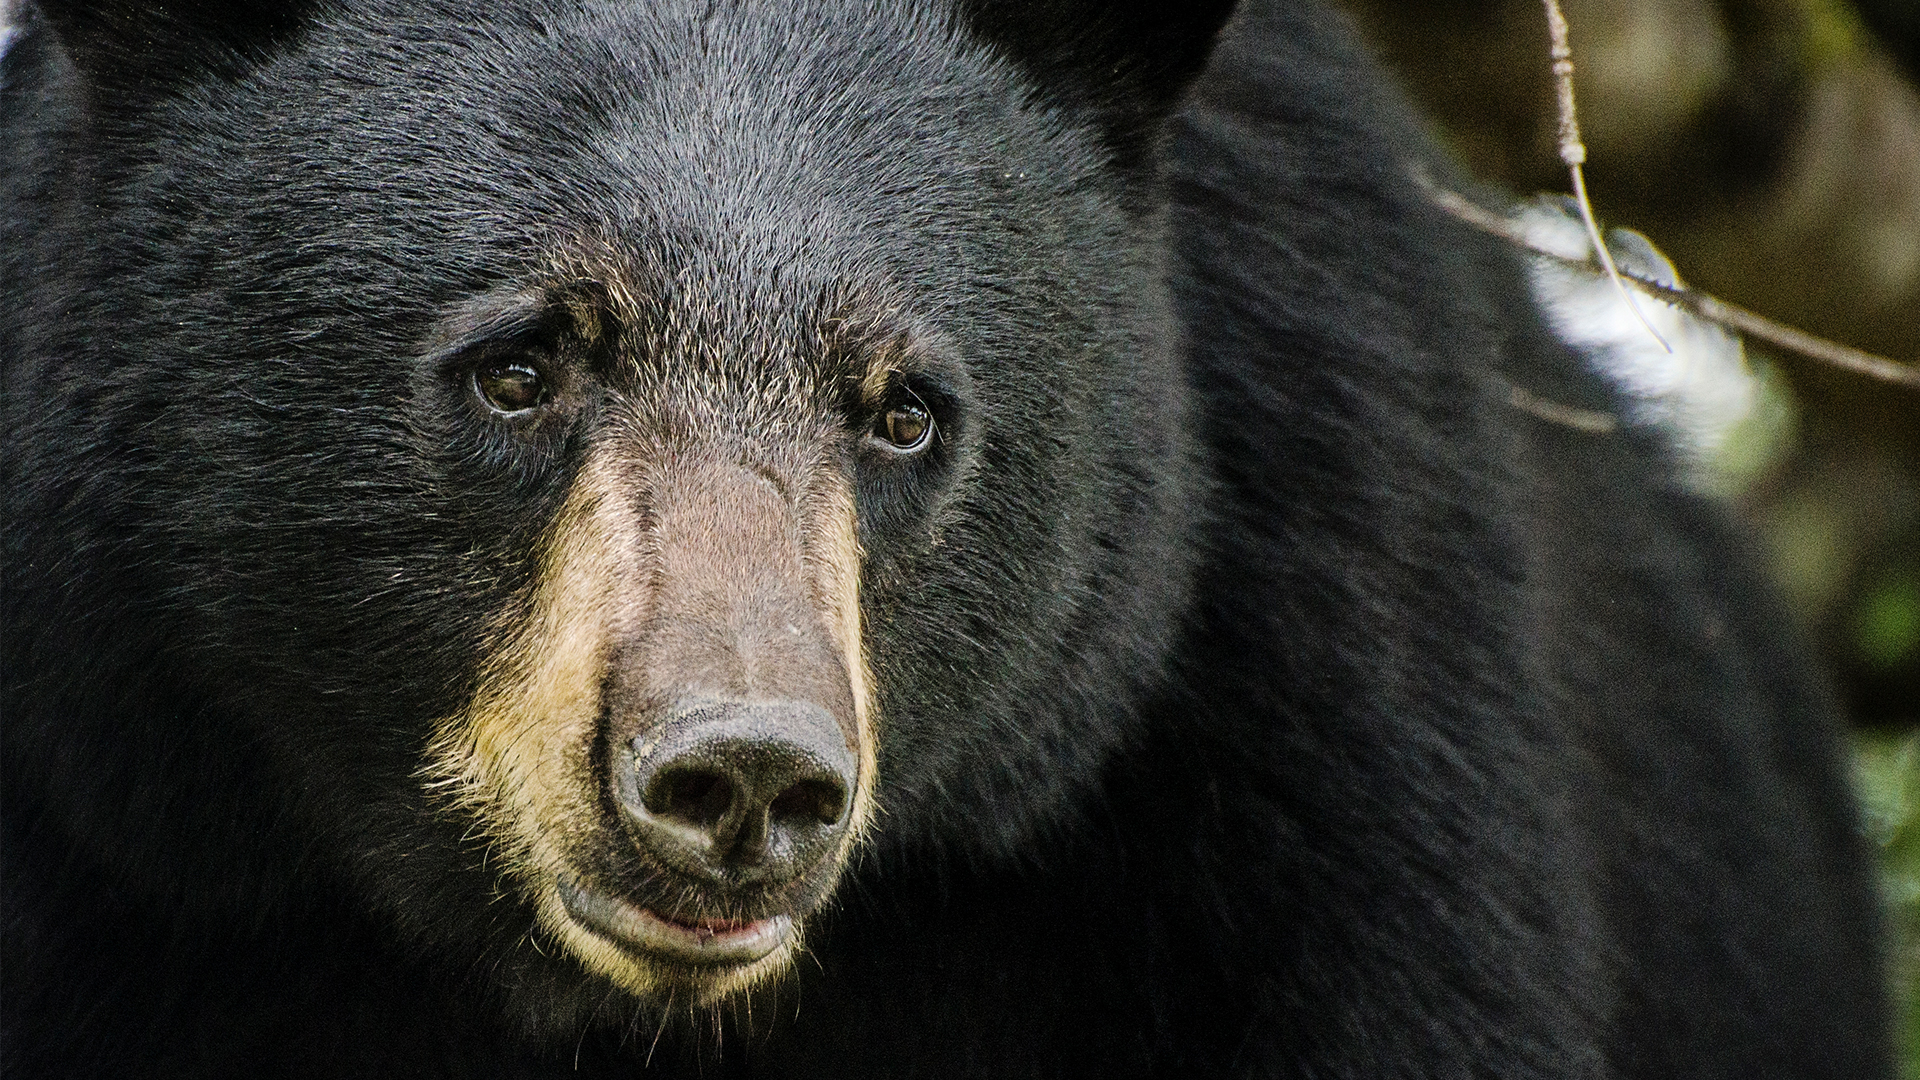 Bear wanders into Tennessee restaurant before meandering on sidewalk with tourists